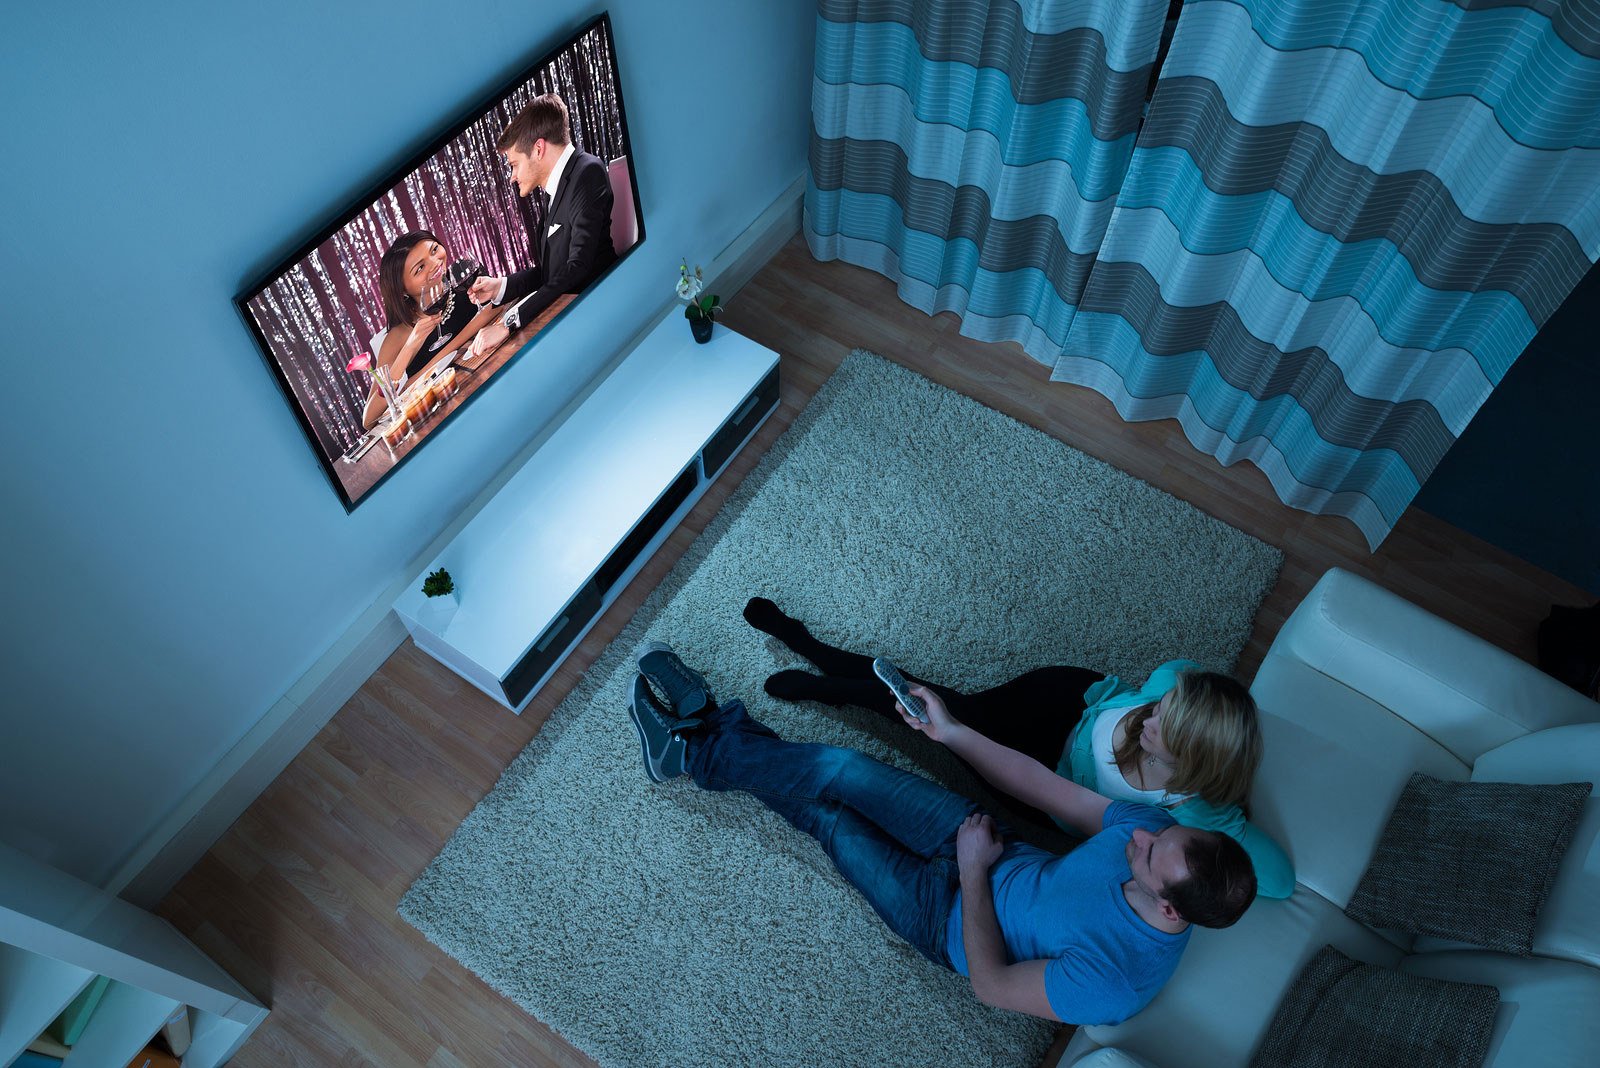 Watching movies in your short stay apartment